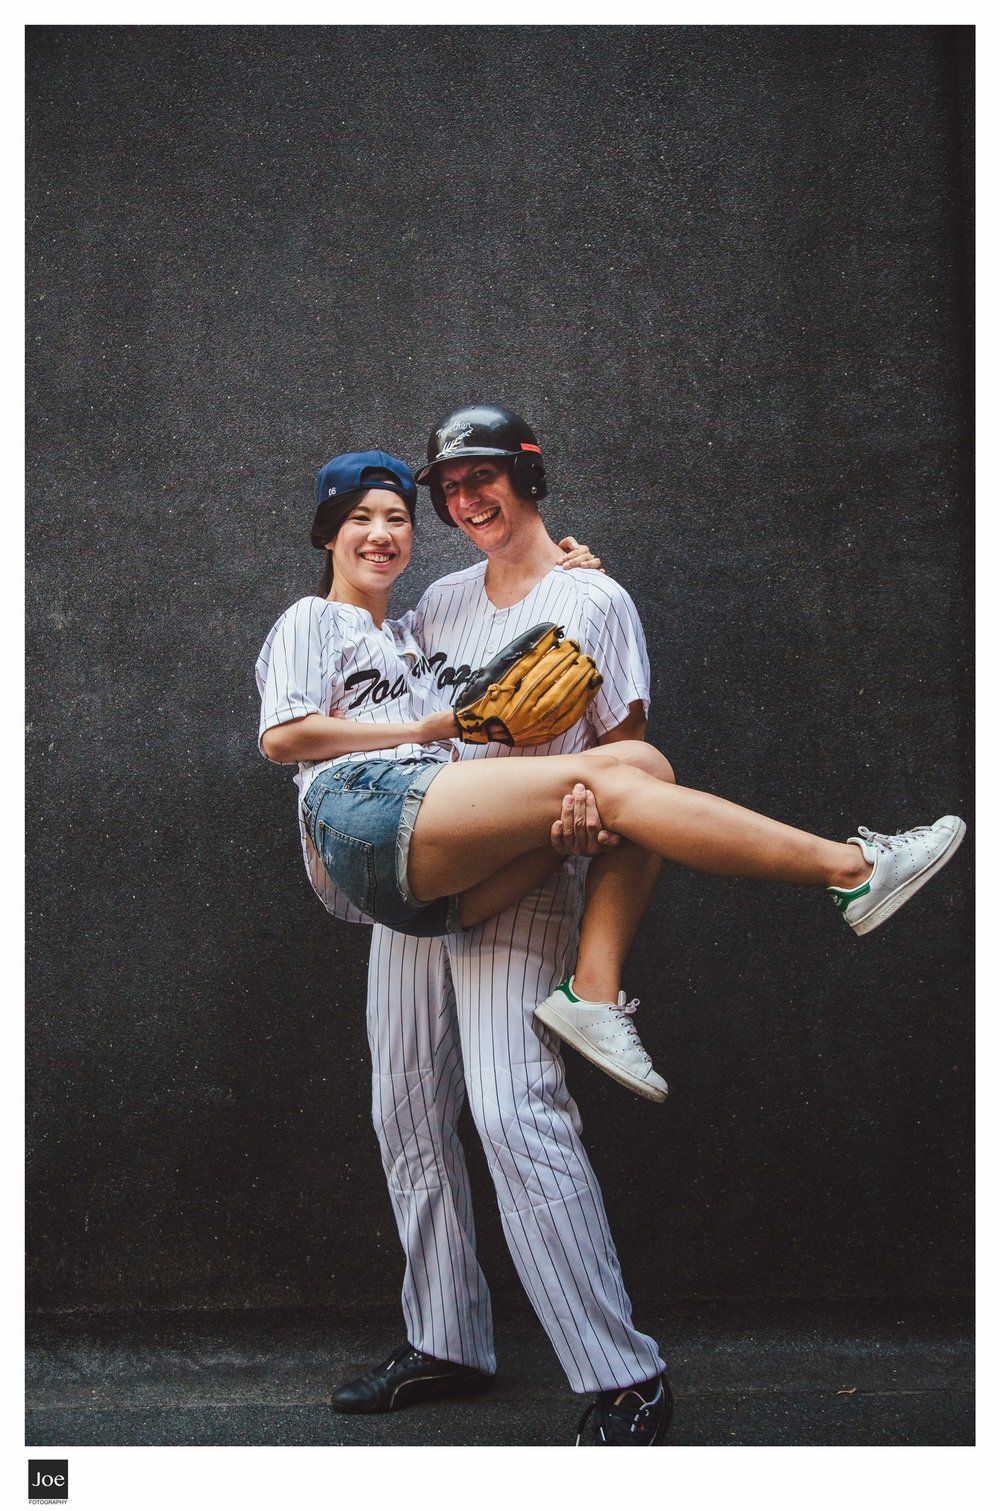 joe-fotography-pre-wedding-kay-jeff-054.jpg